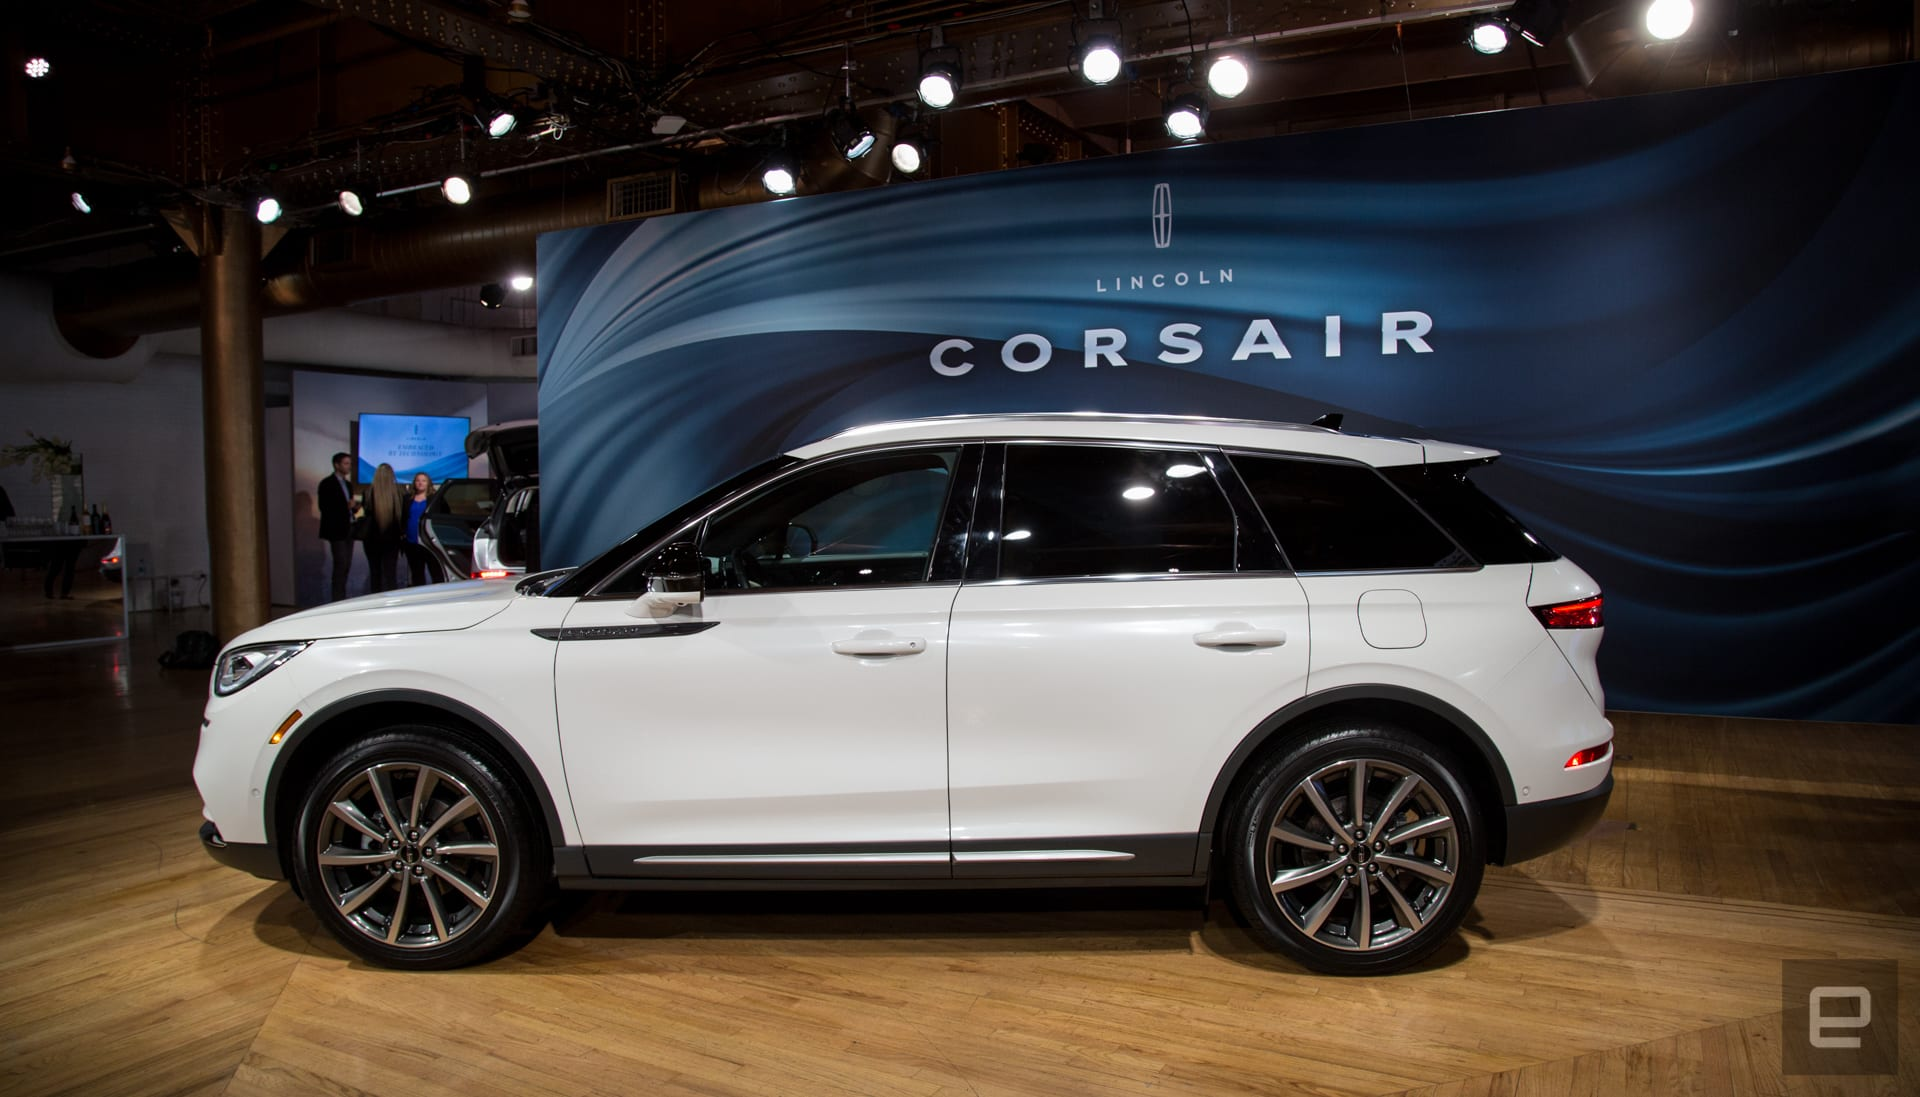 2020 Lincoln Corsair unveil